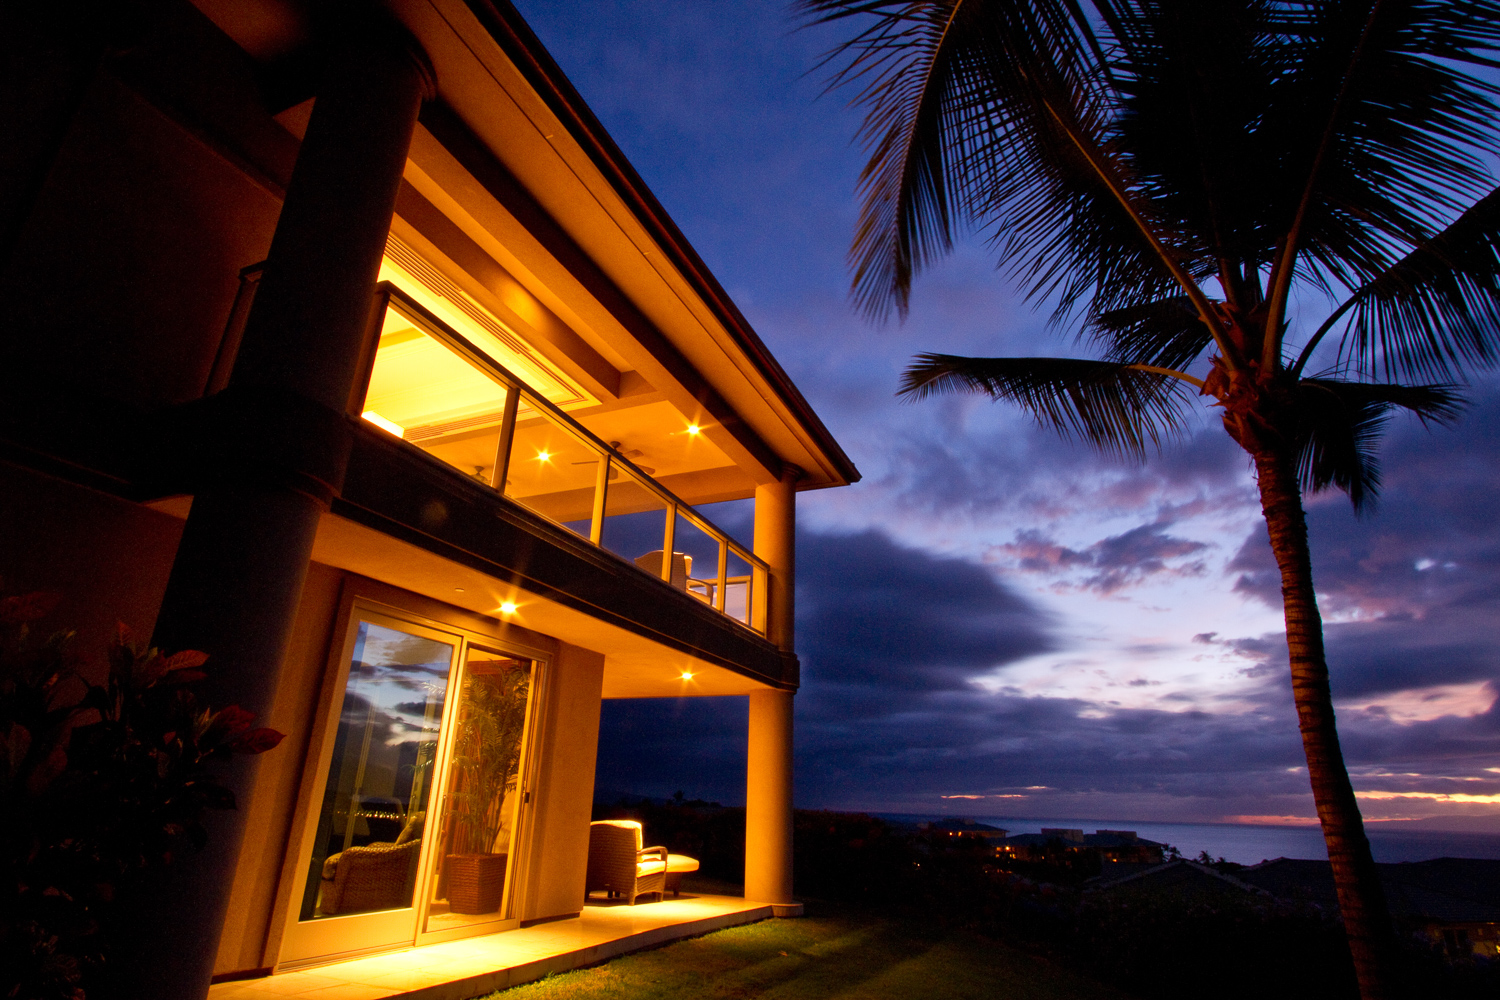 real estate photo with a view of ocean